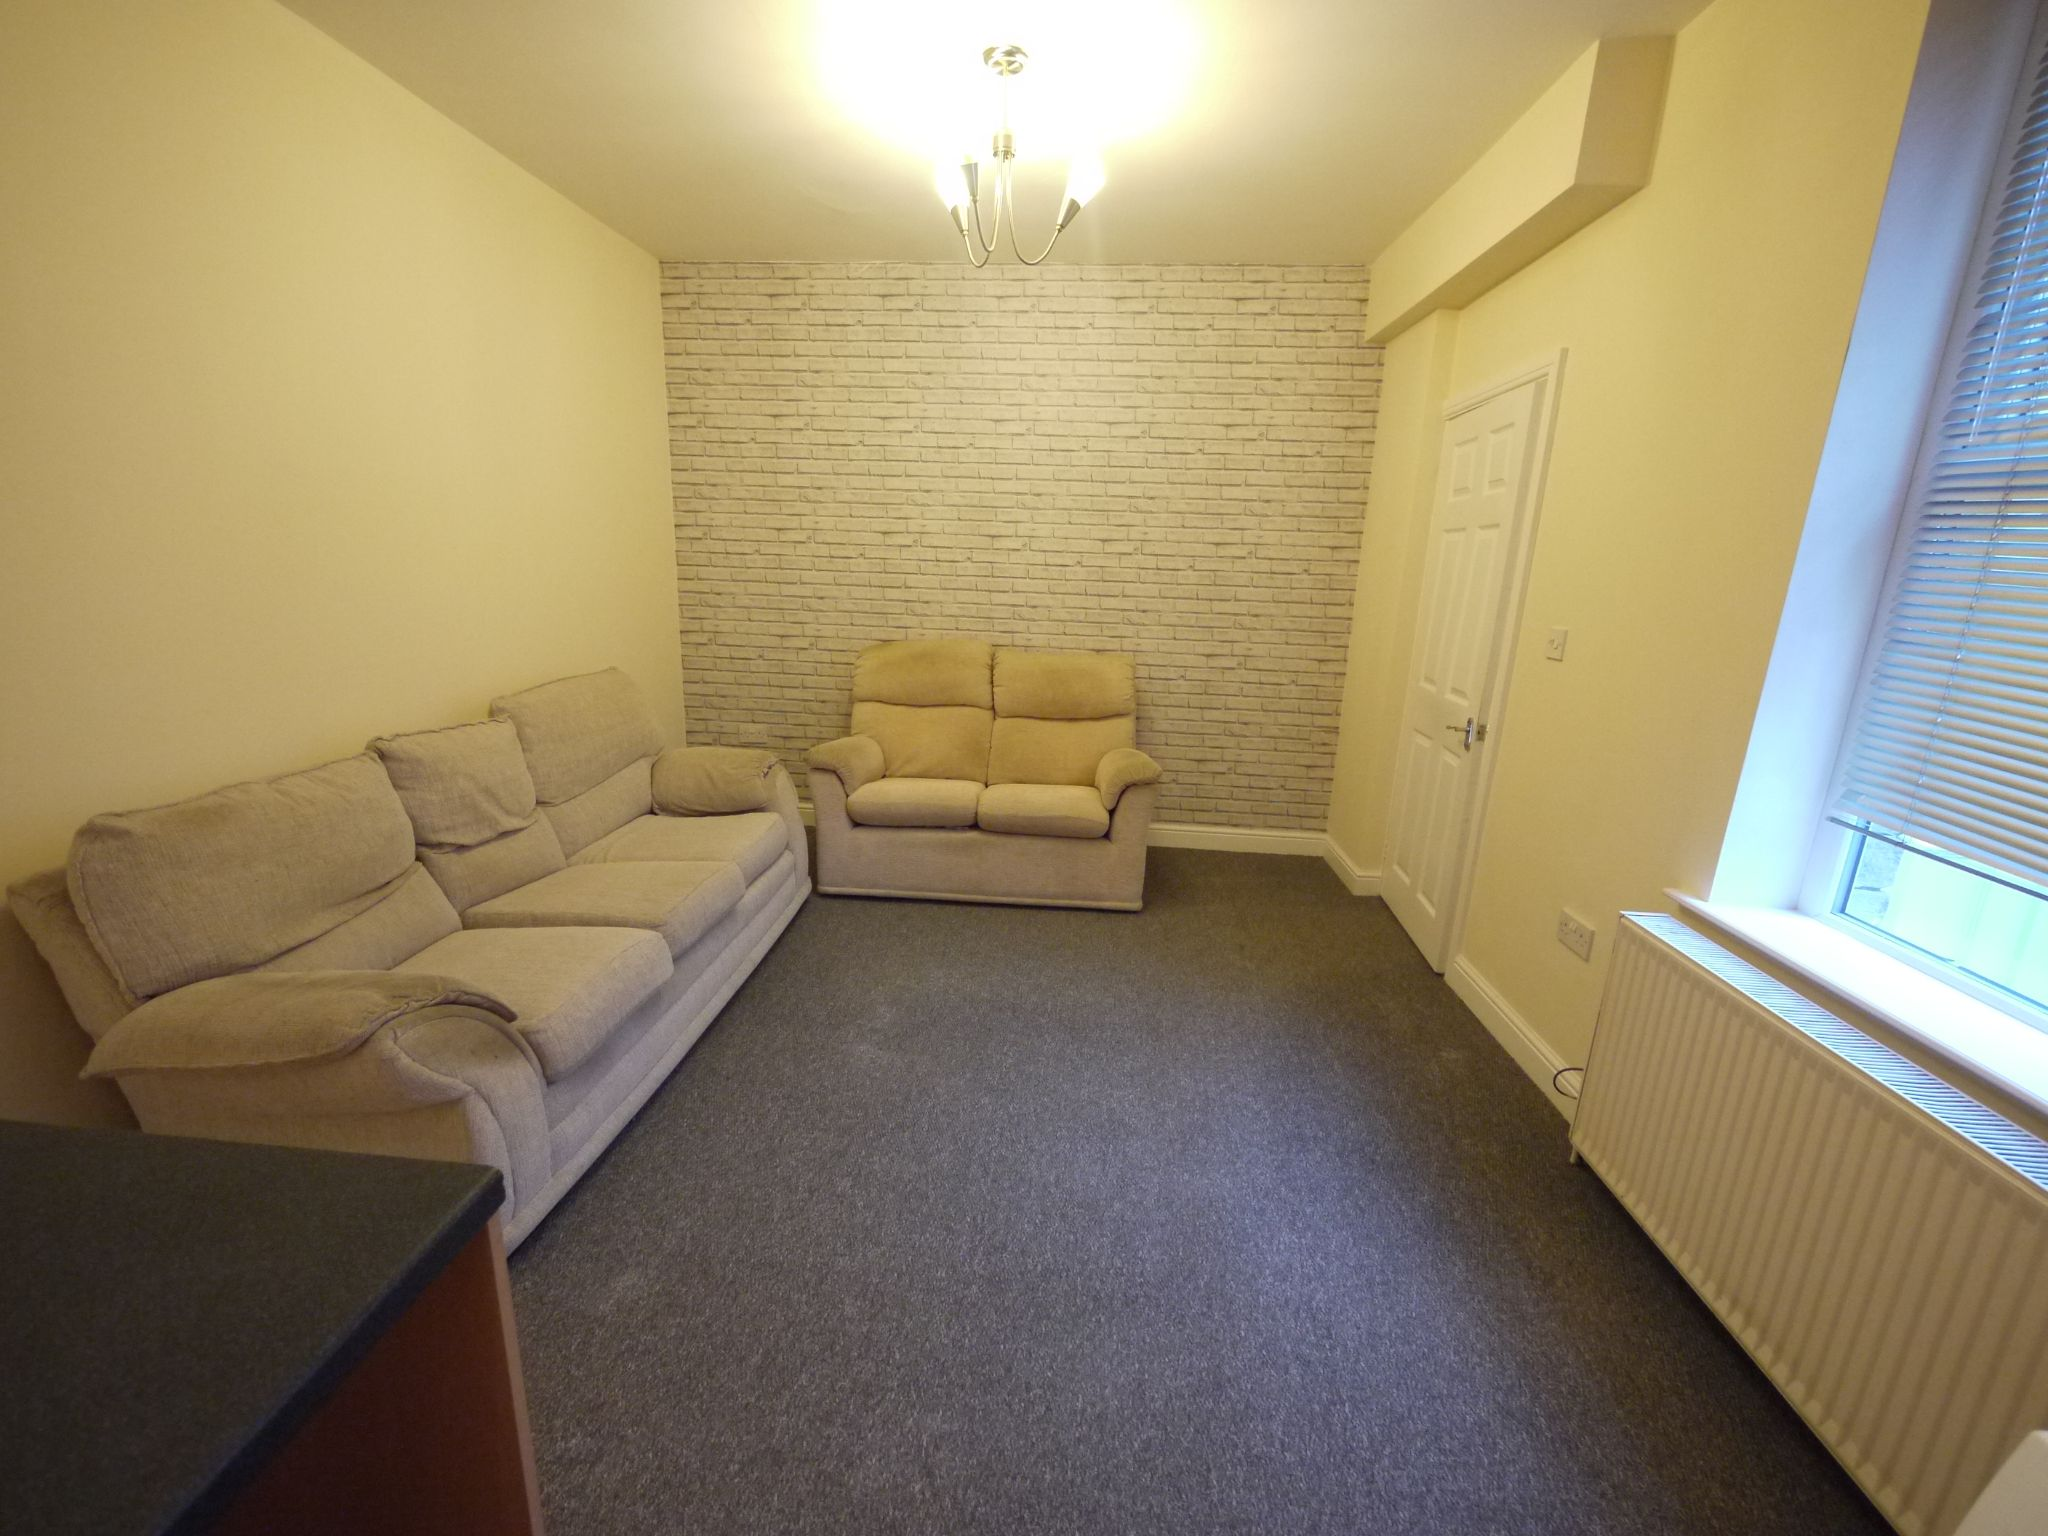 2 bedroom mid terraced house SSTC in Brighouse - Photograph 2.